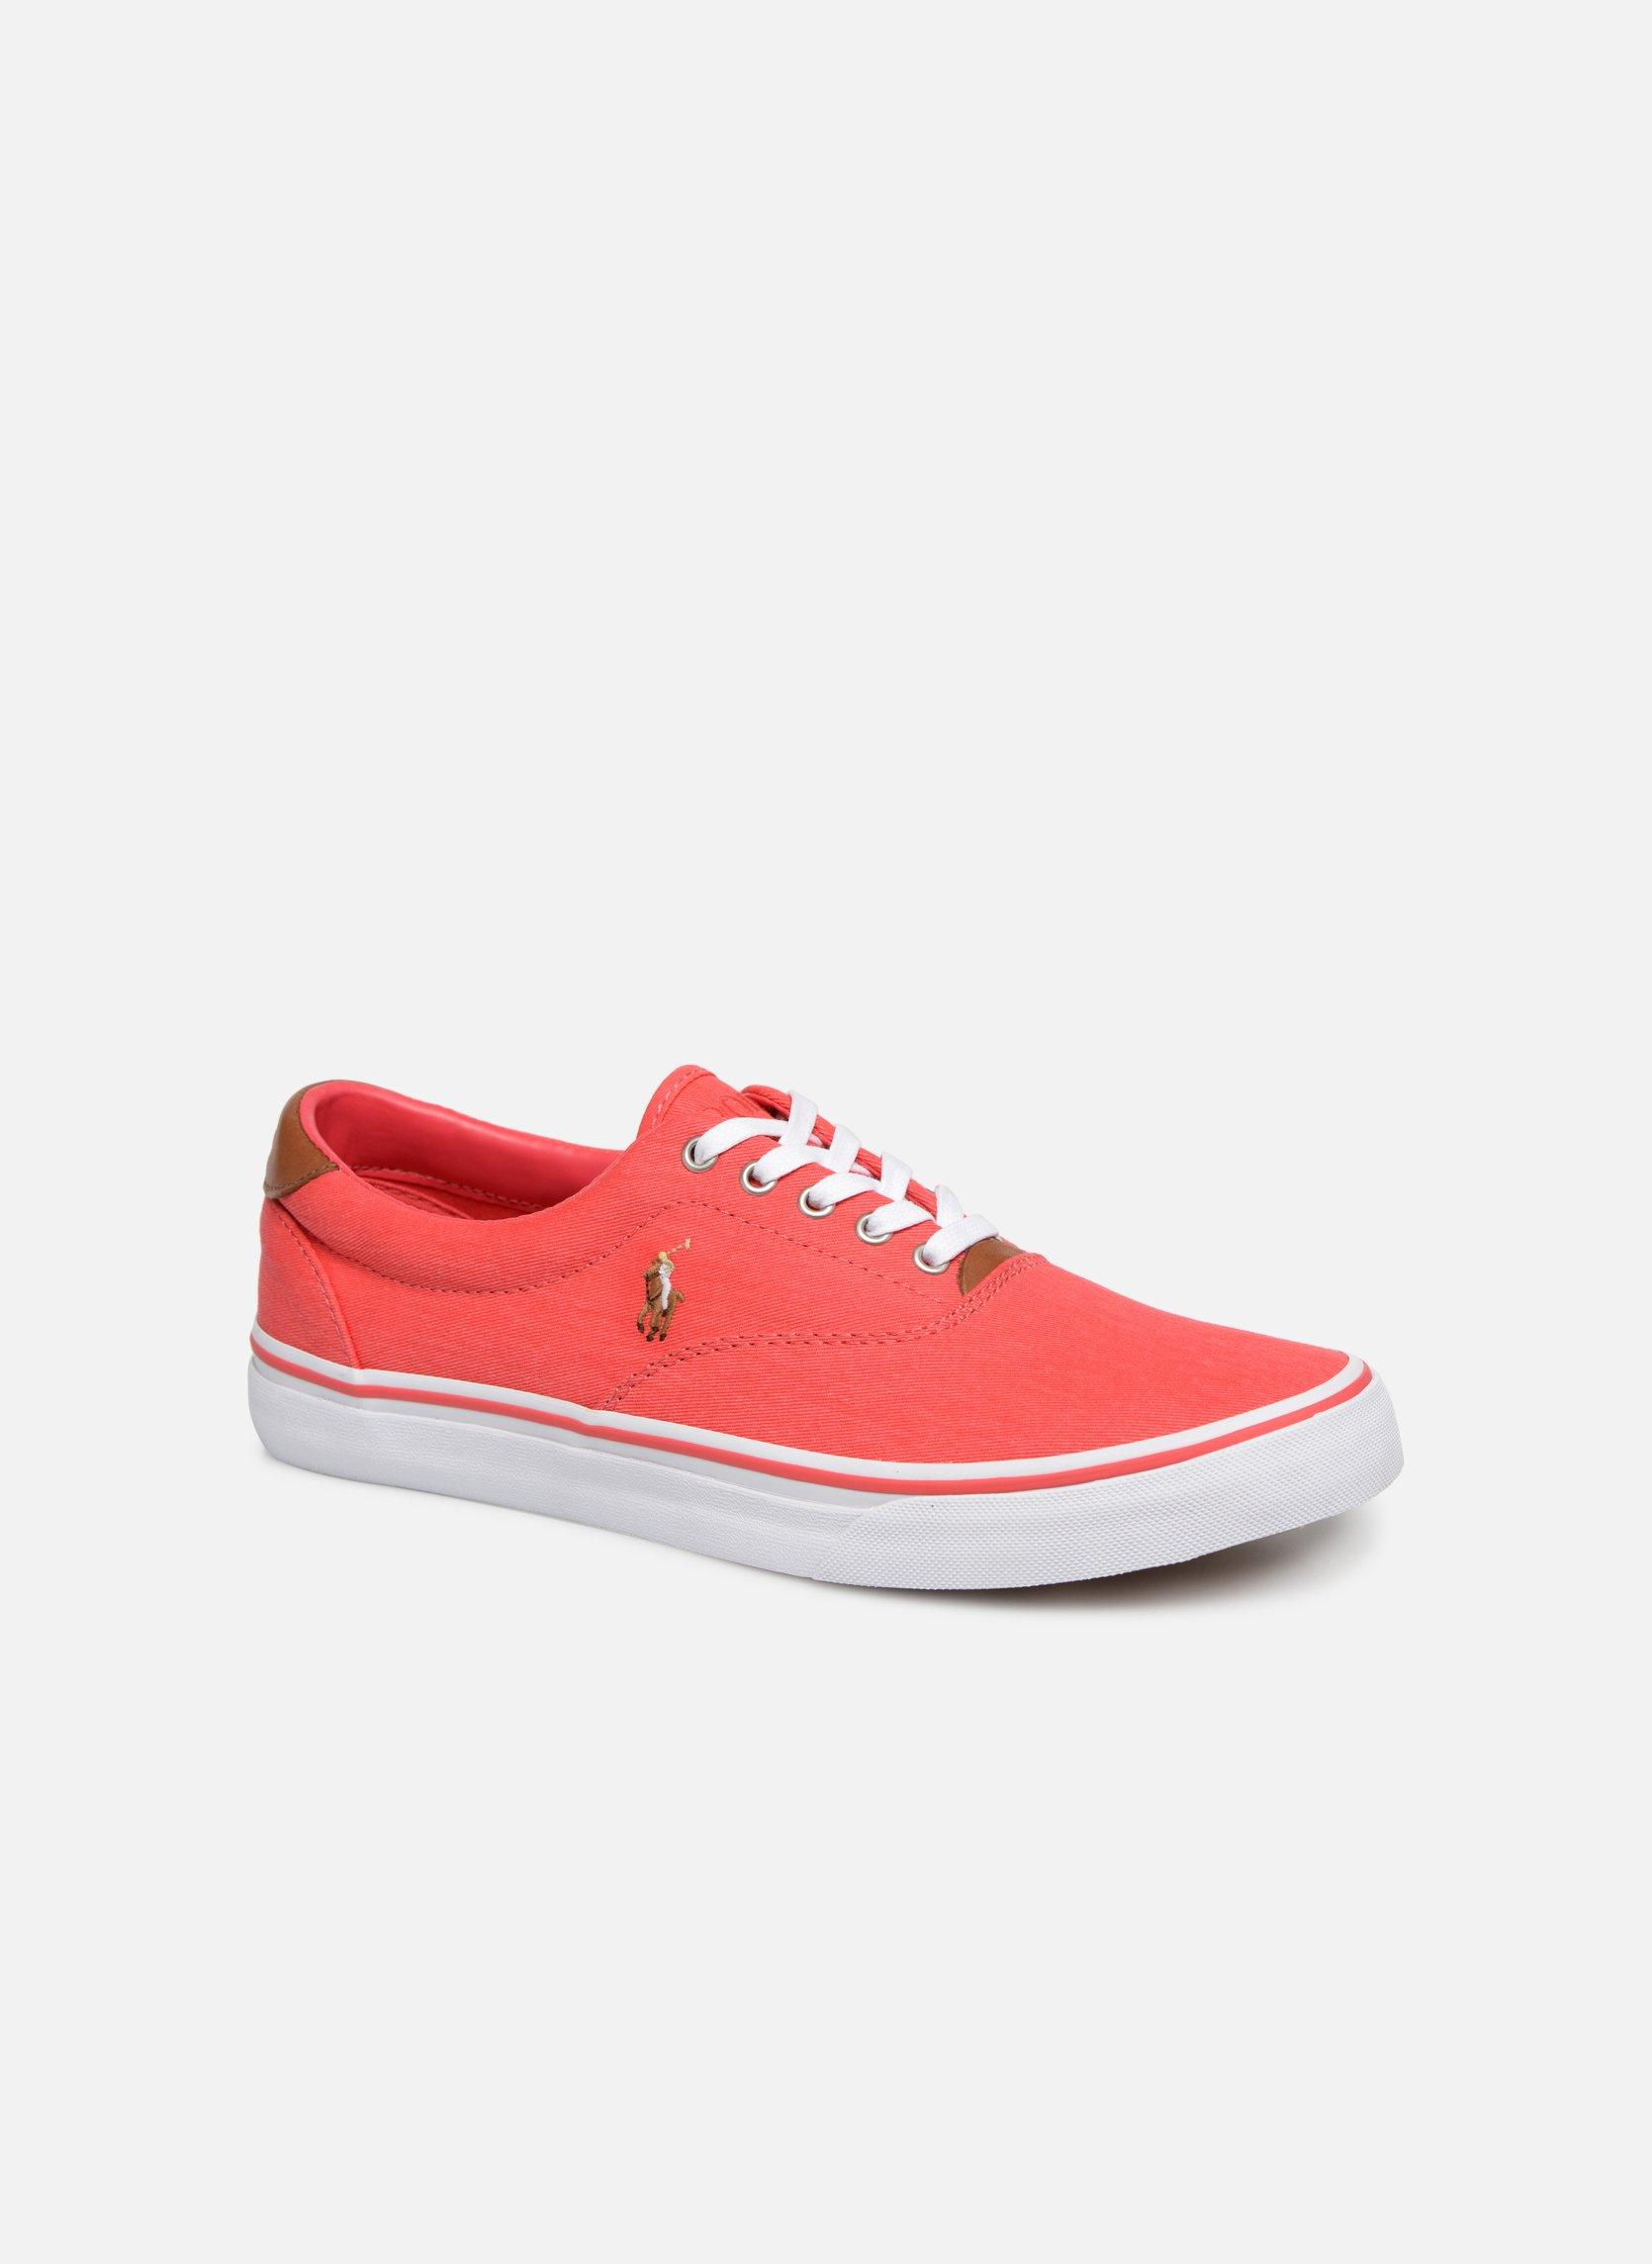 Sneakers Polo Ralph Lauren Rood